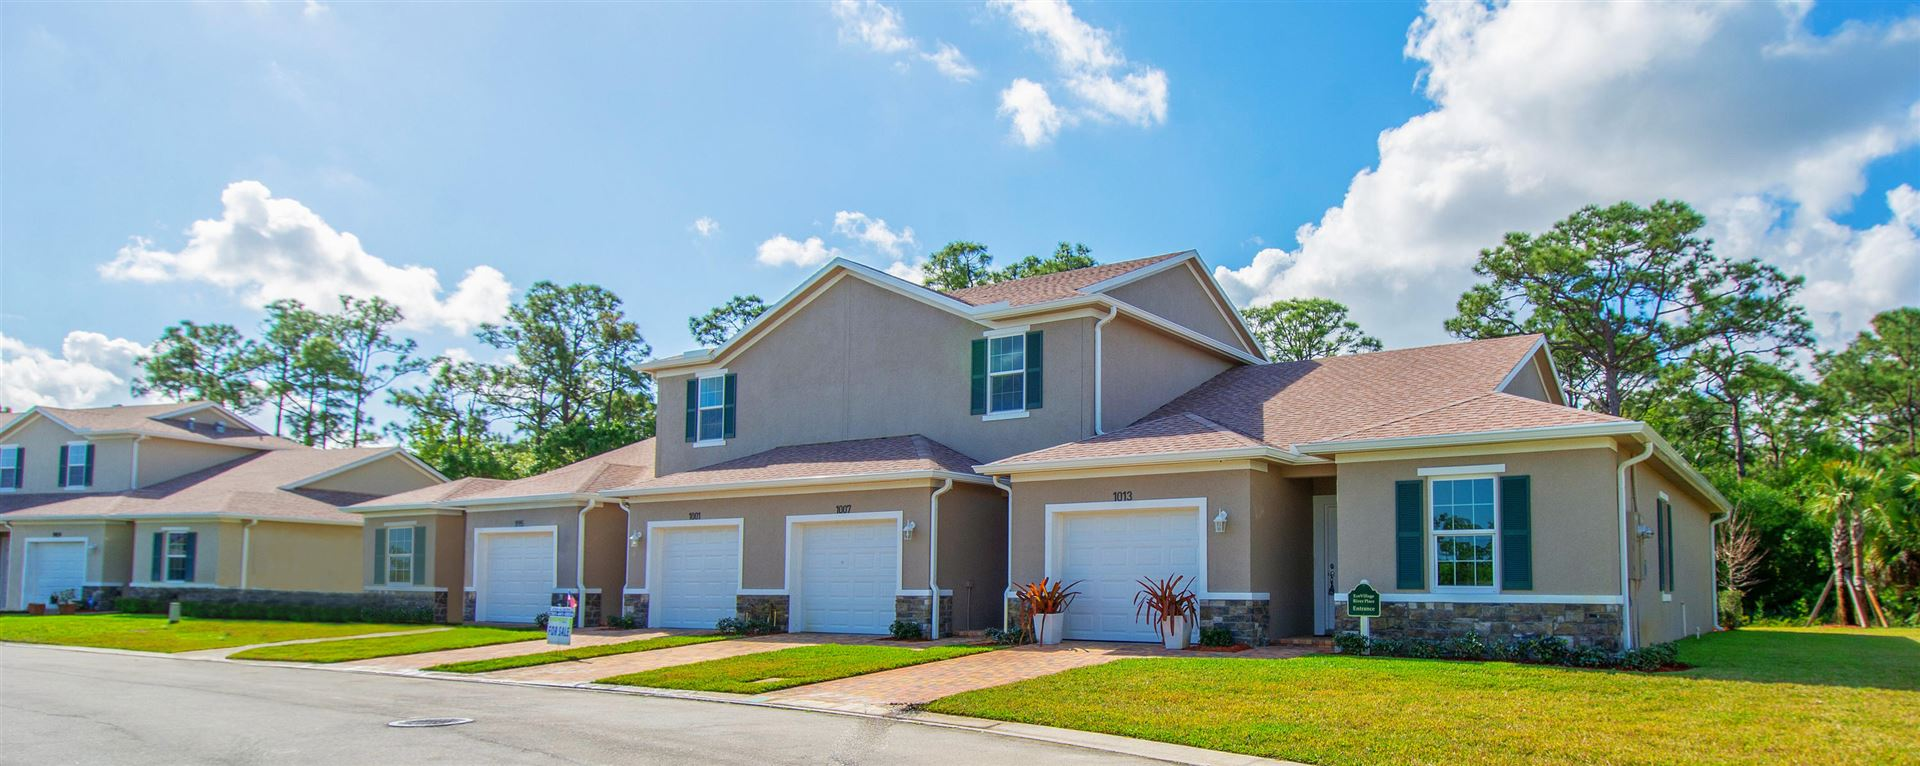 953 NE Trailside Run, Port Saint Lucie, FL 34983 - #: RX-10622567